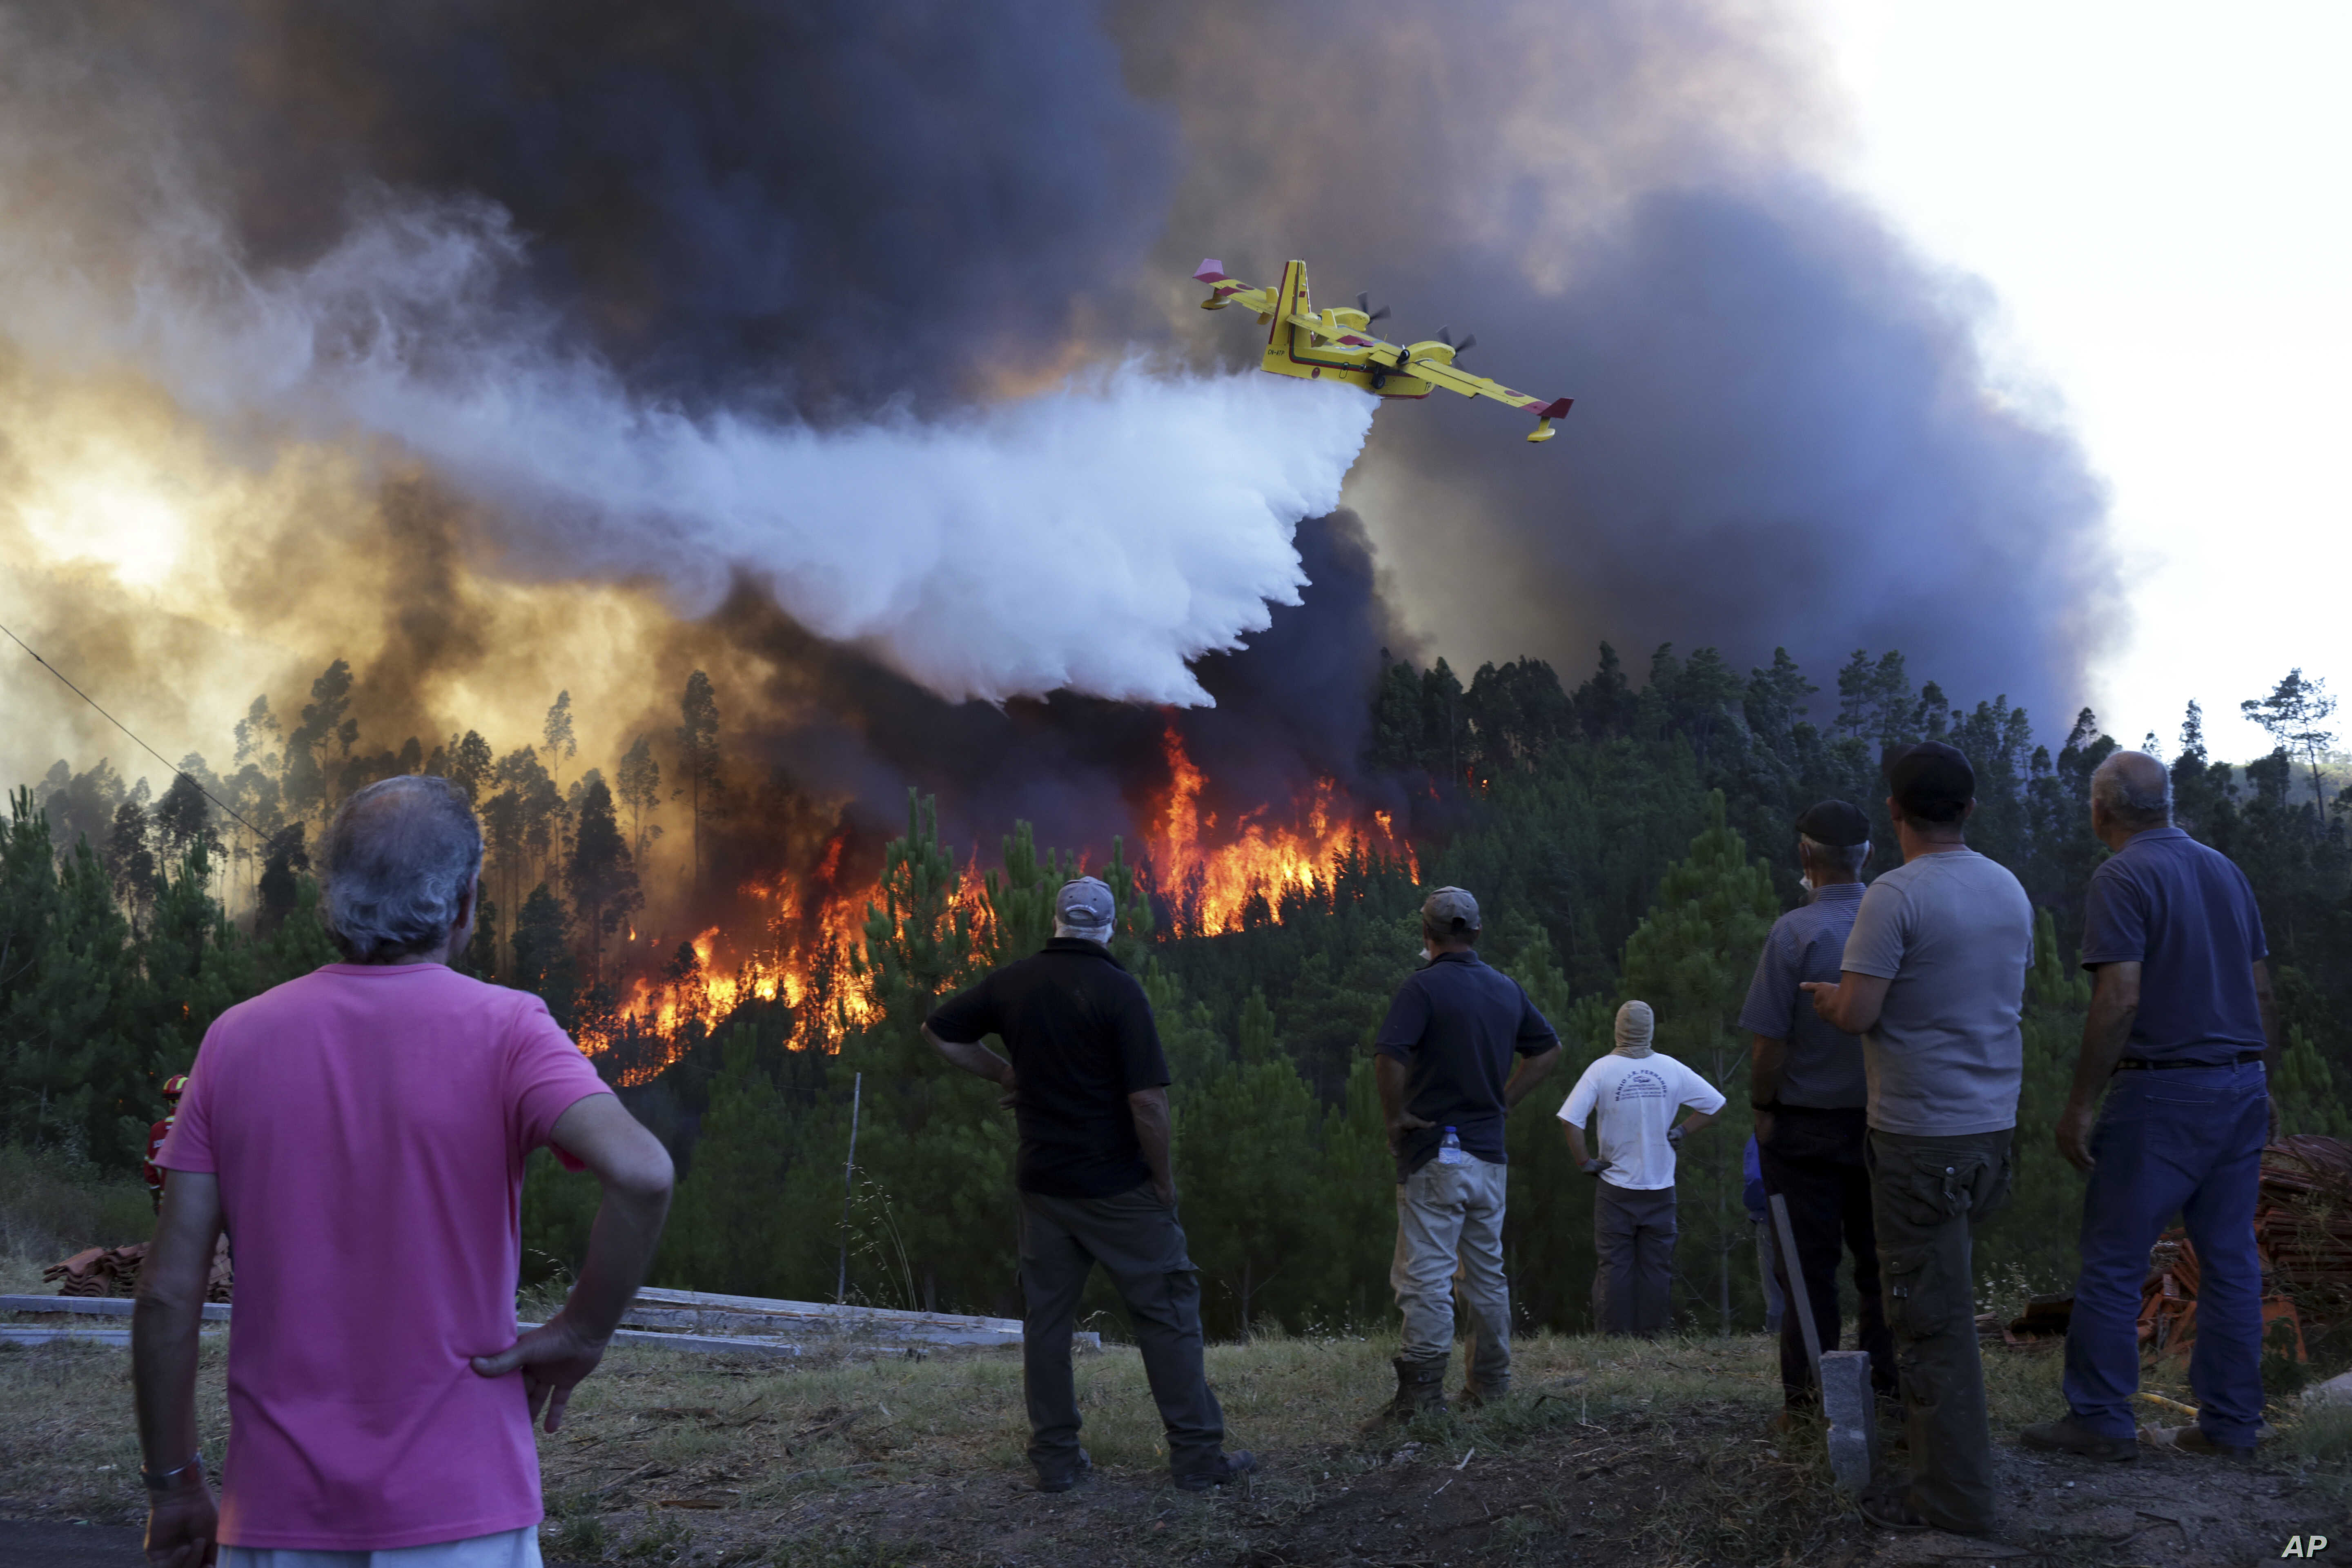 Villagers watch a firefighting plane drop water to stop a raging forest fire reaching their houses just a few dozen meters away in the village of Chao de Codes, near Macao, central Portugal.